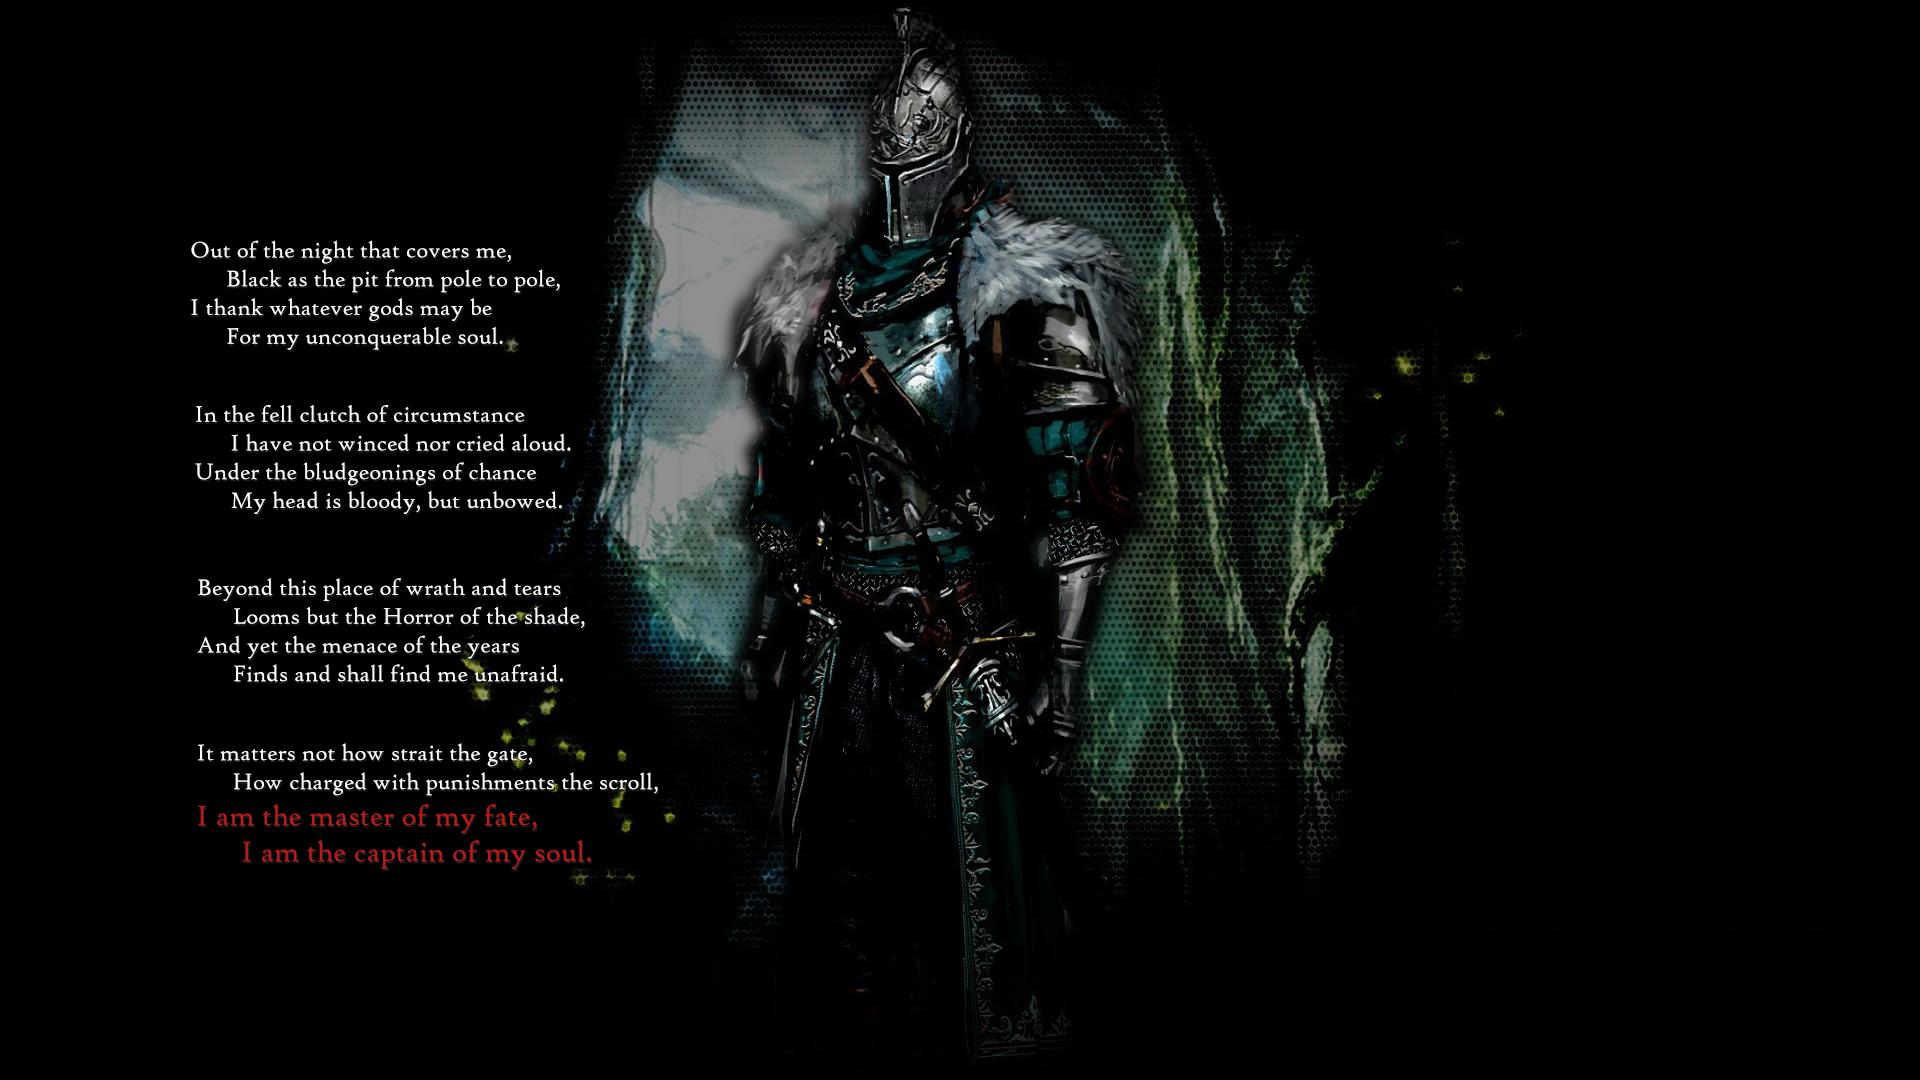 Another Dark Souls 2 Wallpaper With Invictus Ubrokenbirthday Posted 1920x1080